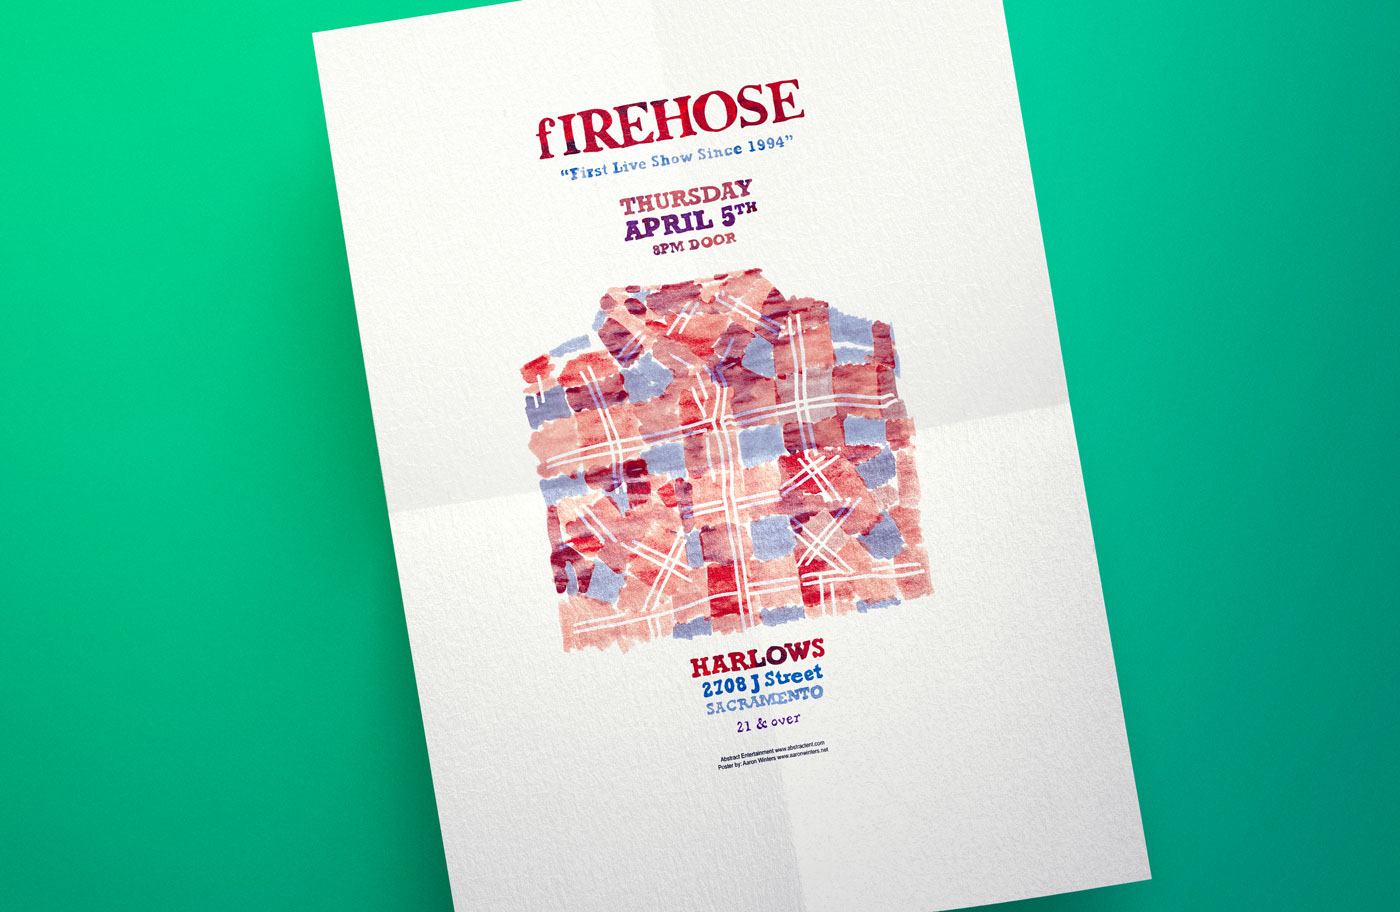 fIREHOSE Reunion Tour poster